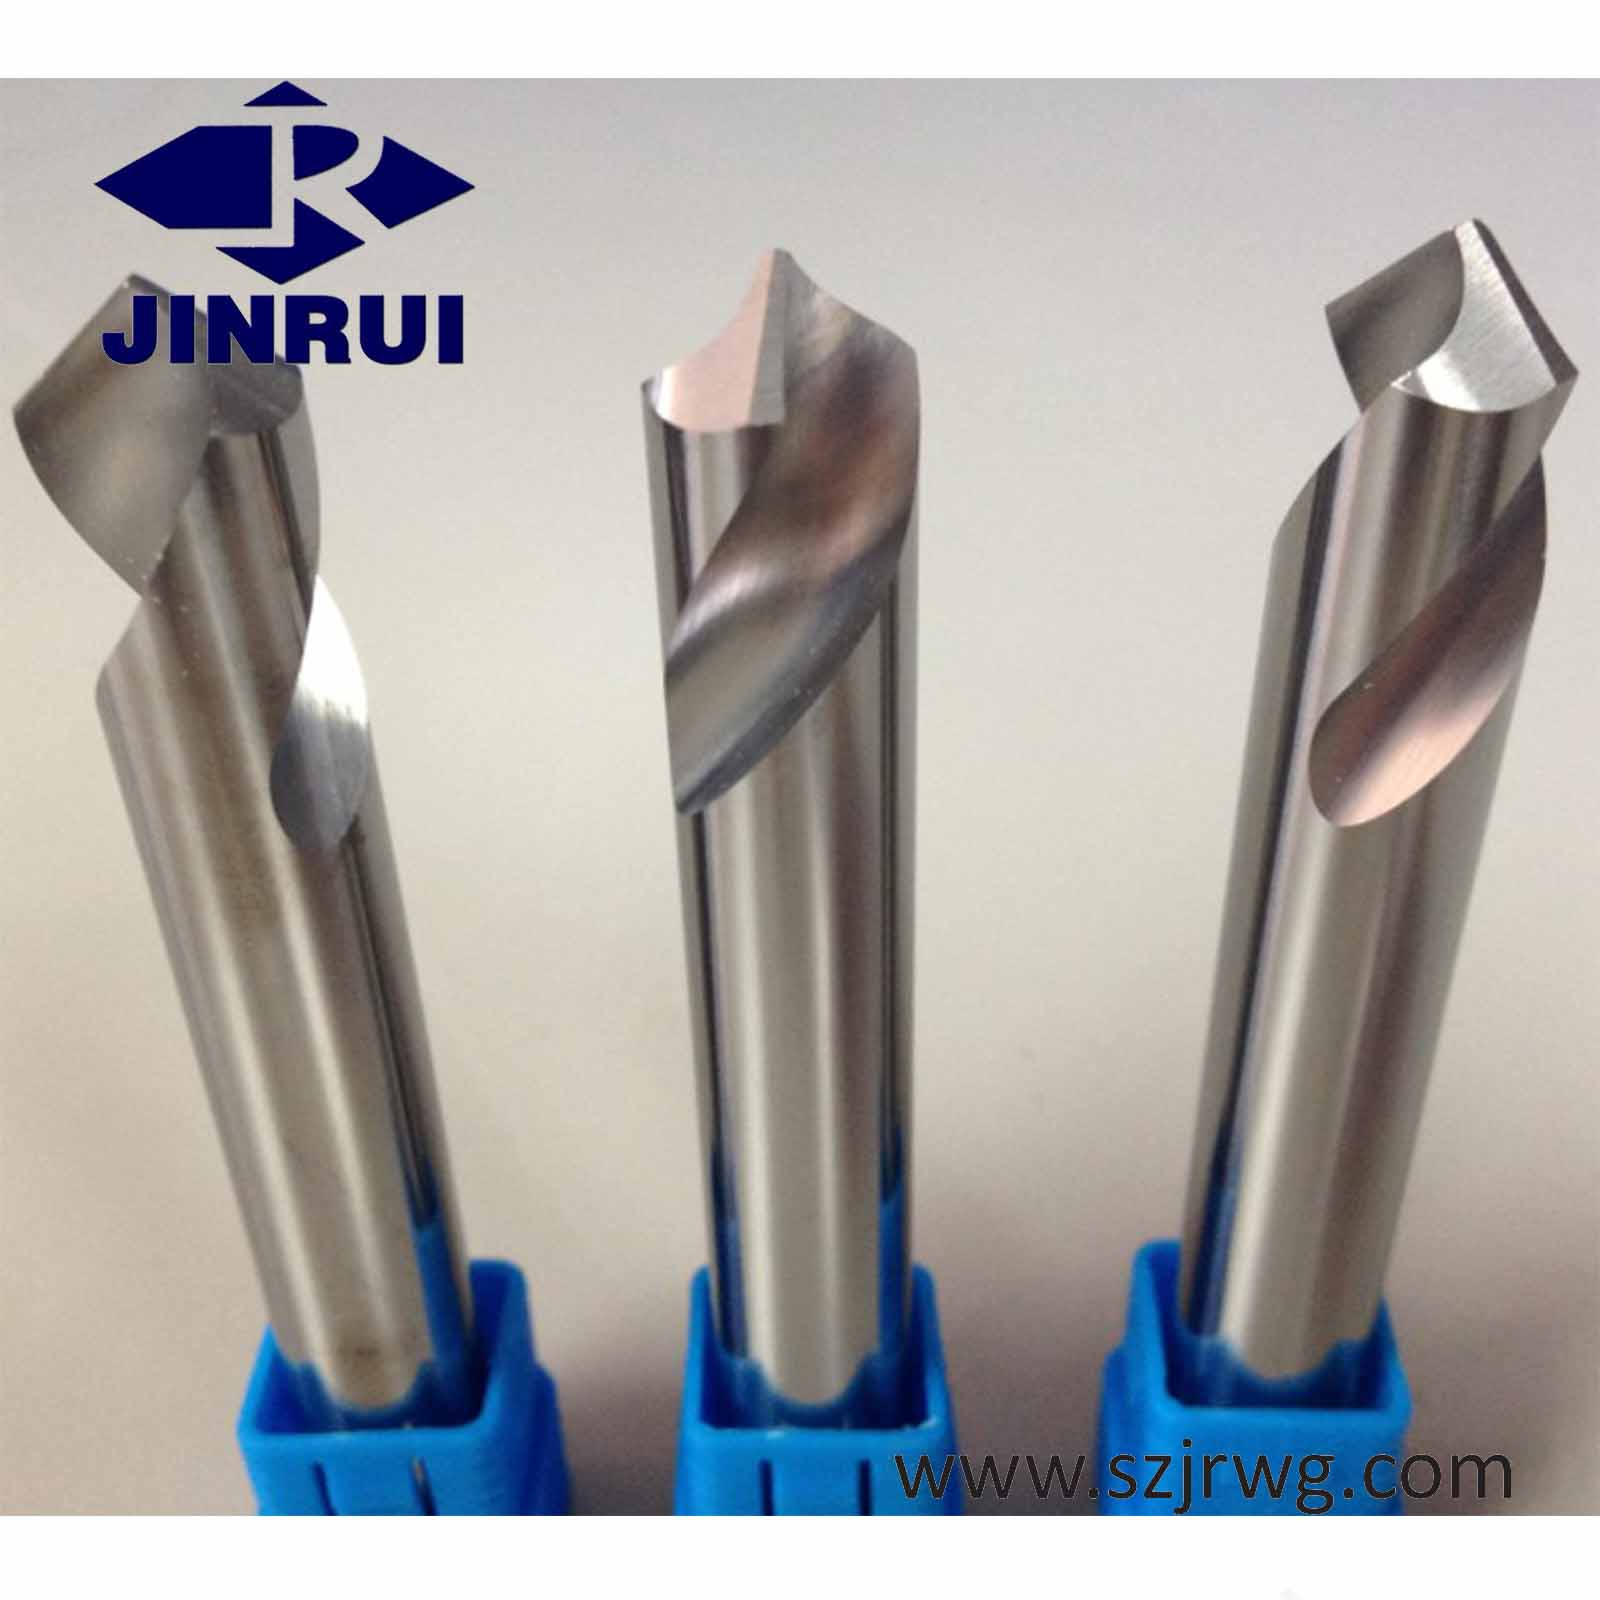 CNC Solid Carbide Spotting Drill Bits/Customized Drilling Tools/PCB Carbide Rose Reamer